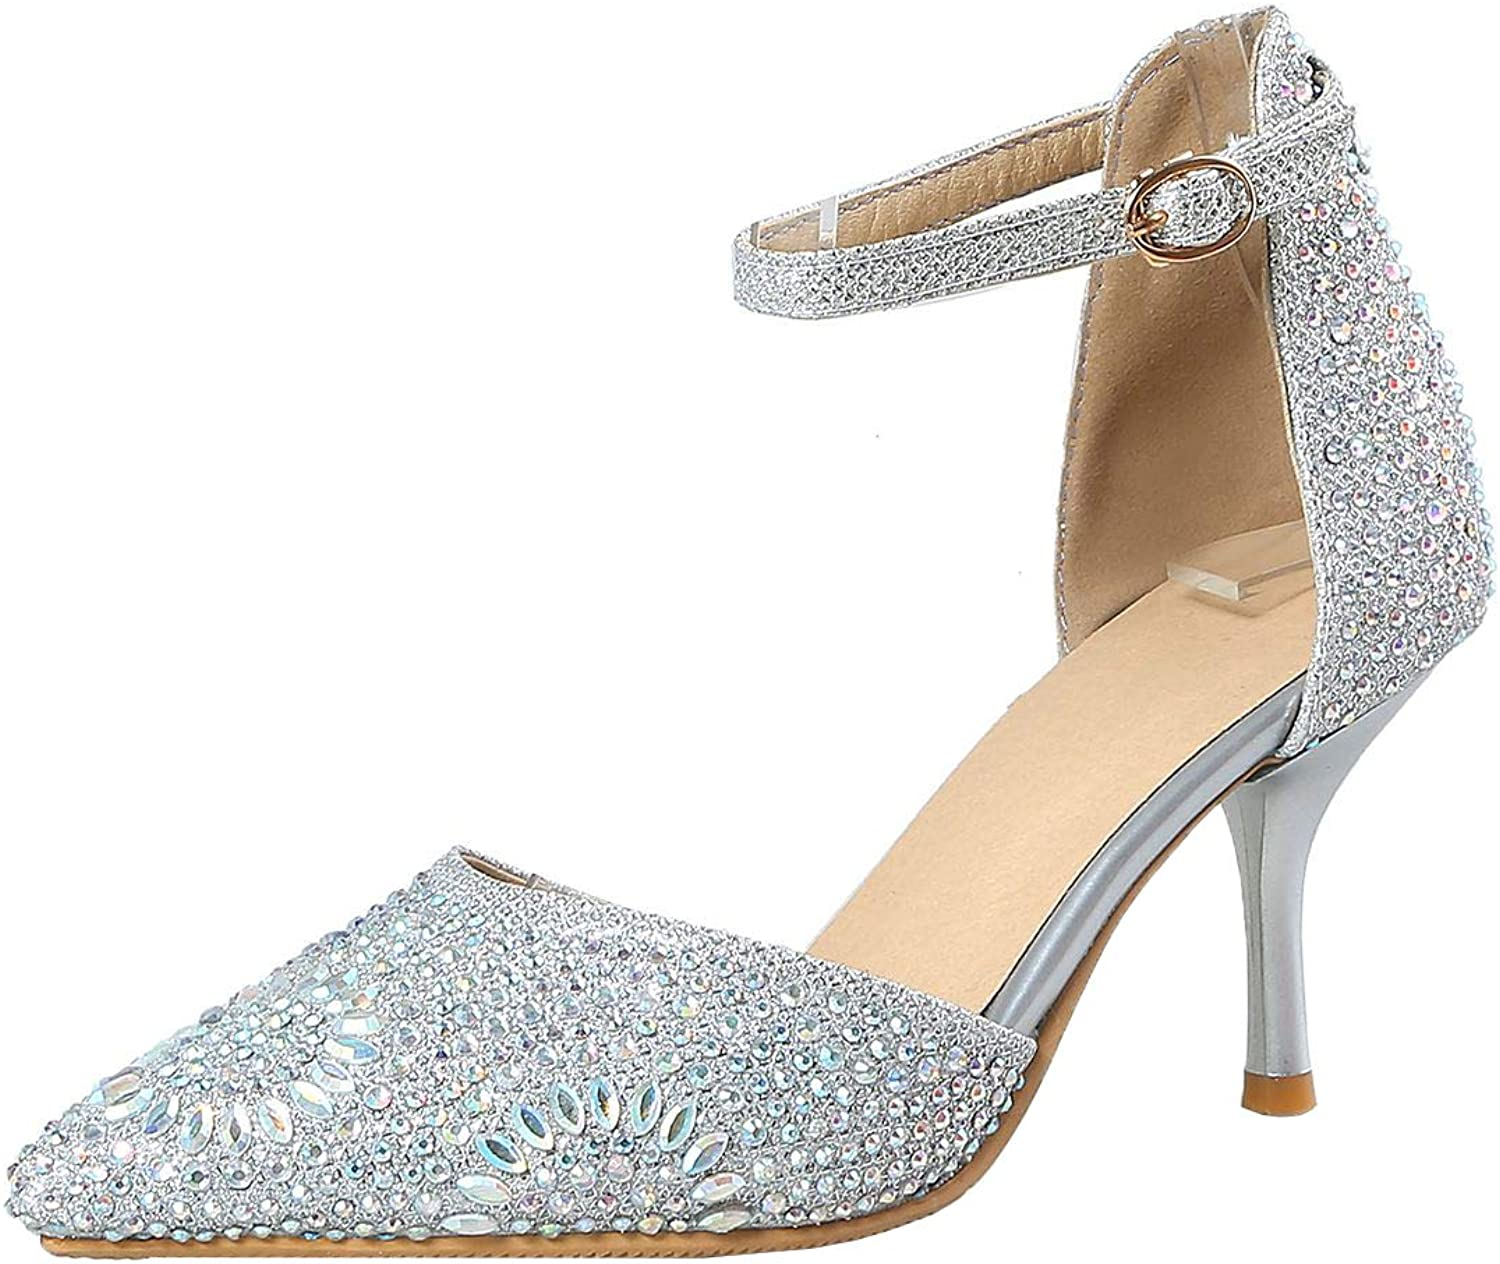 Vitalo Womens Crystal Rhinestone Pointed Toe Pumps Glitter Ankle Strap D'Orsay shoes